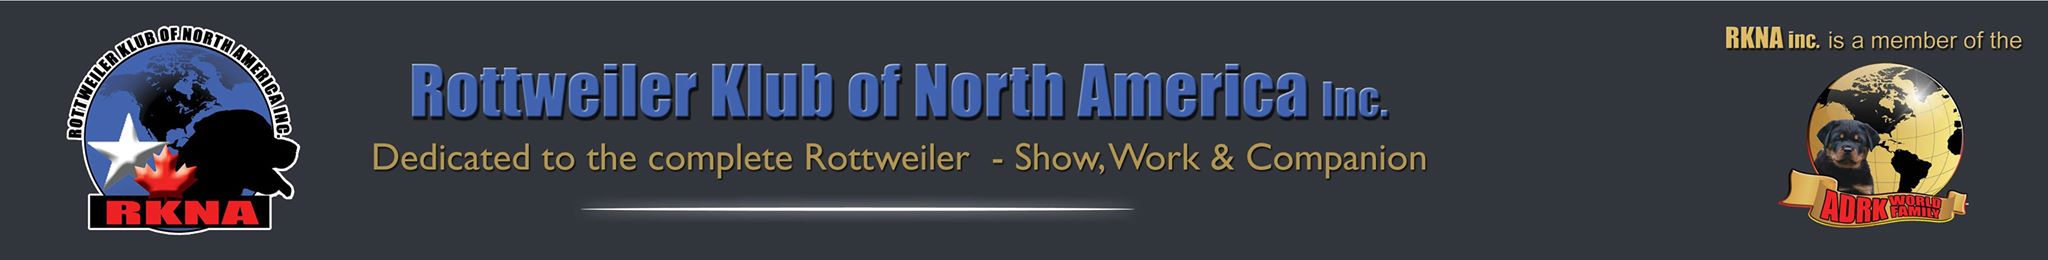 Rottweiler Klub of North America Inc. USA | Website